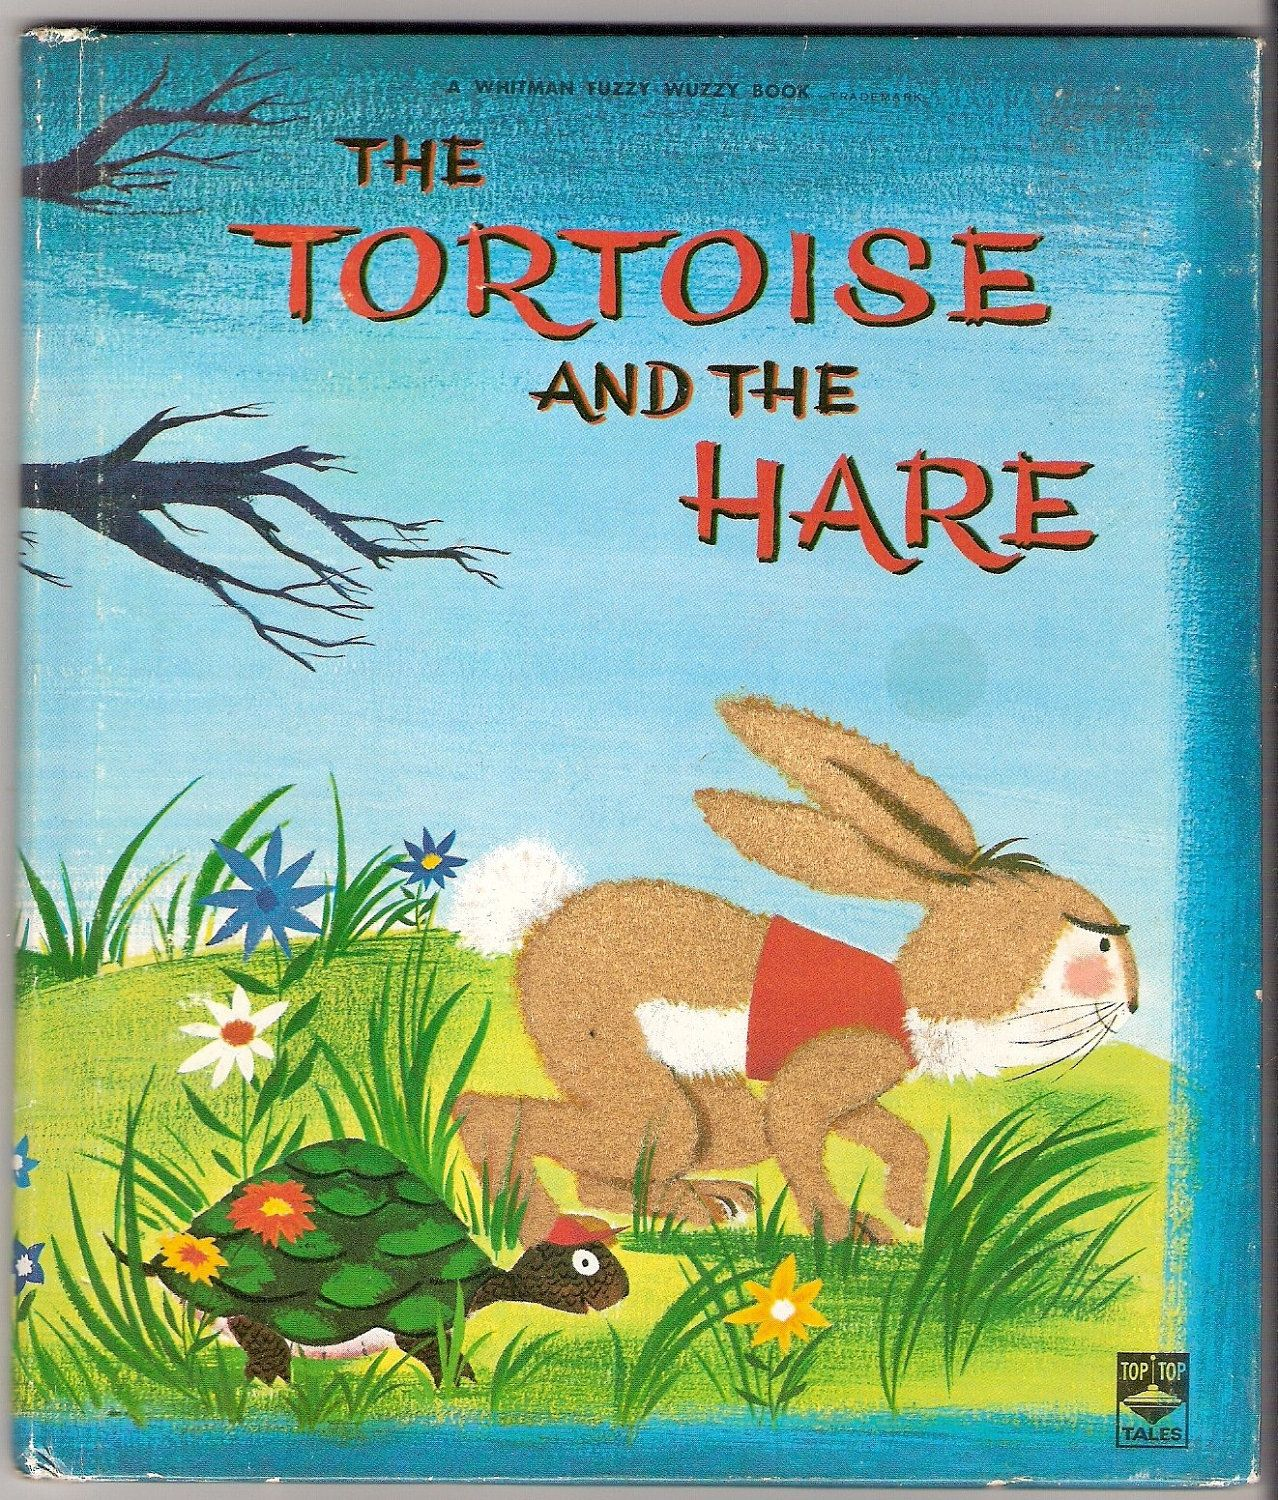 The TORTOISE and the HARE Whitman Fuzzy Wuzzy Book Illustrated by ...